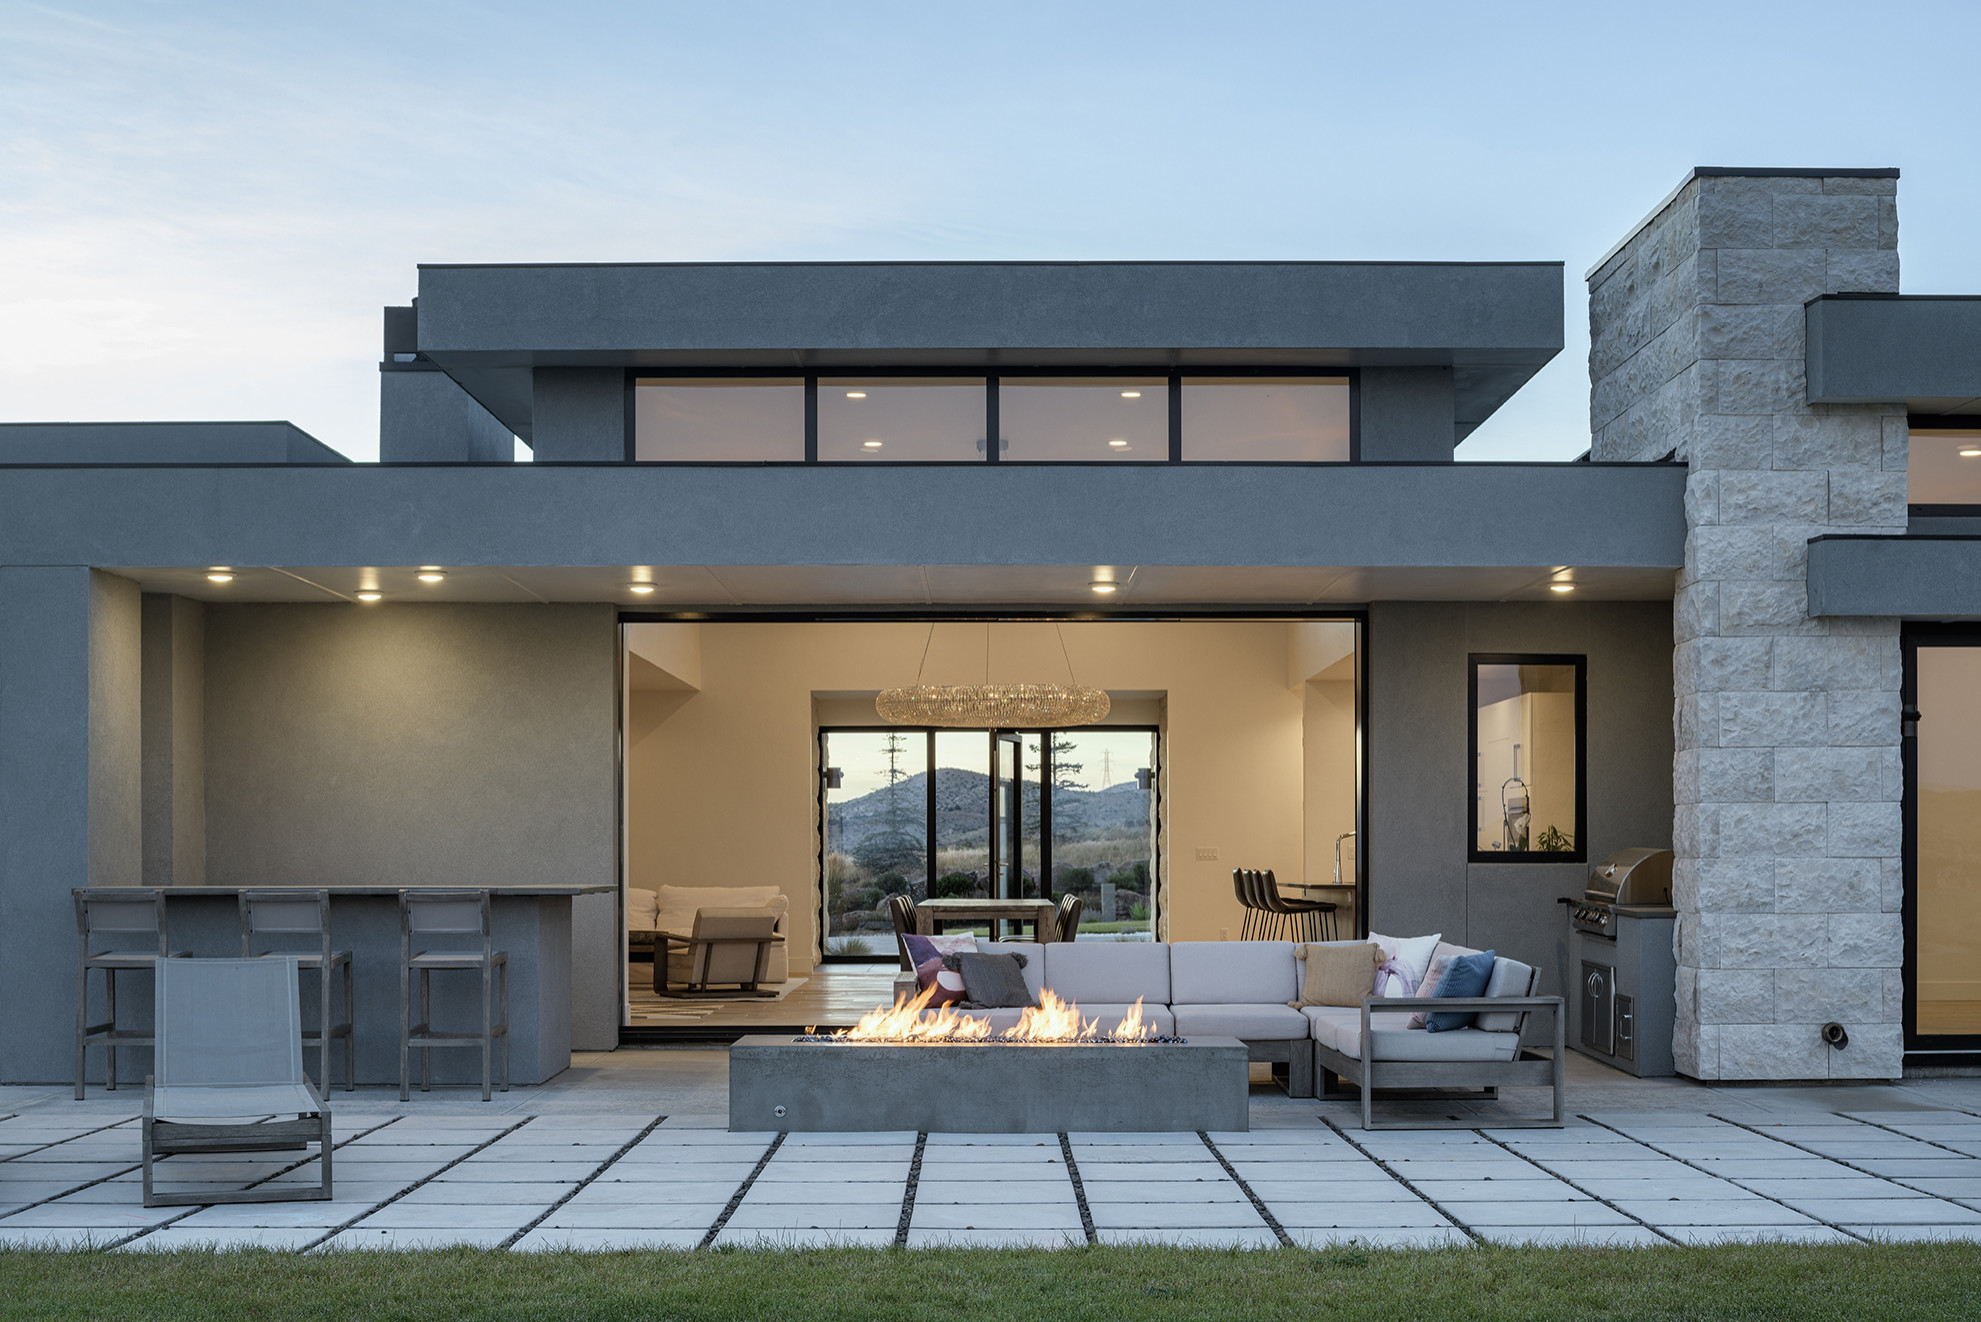 18 Beautiful One Story Flat Roof Pictures Ideas October 2020 Houzz